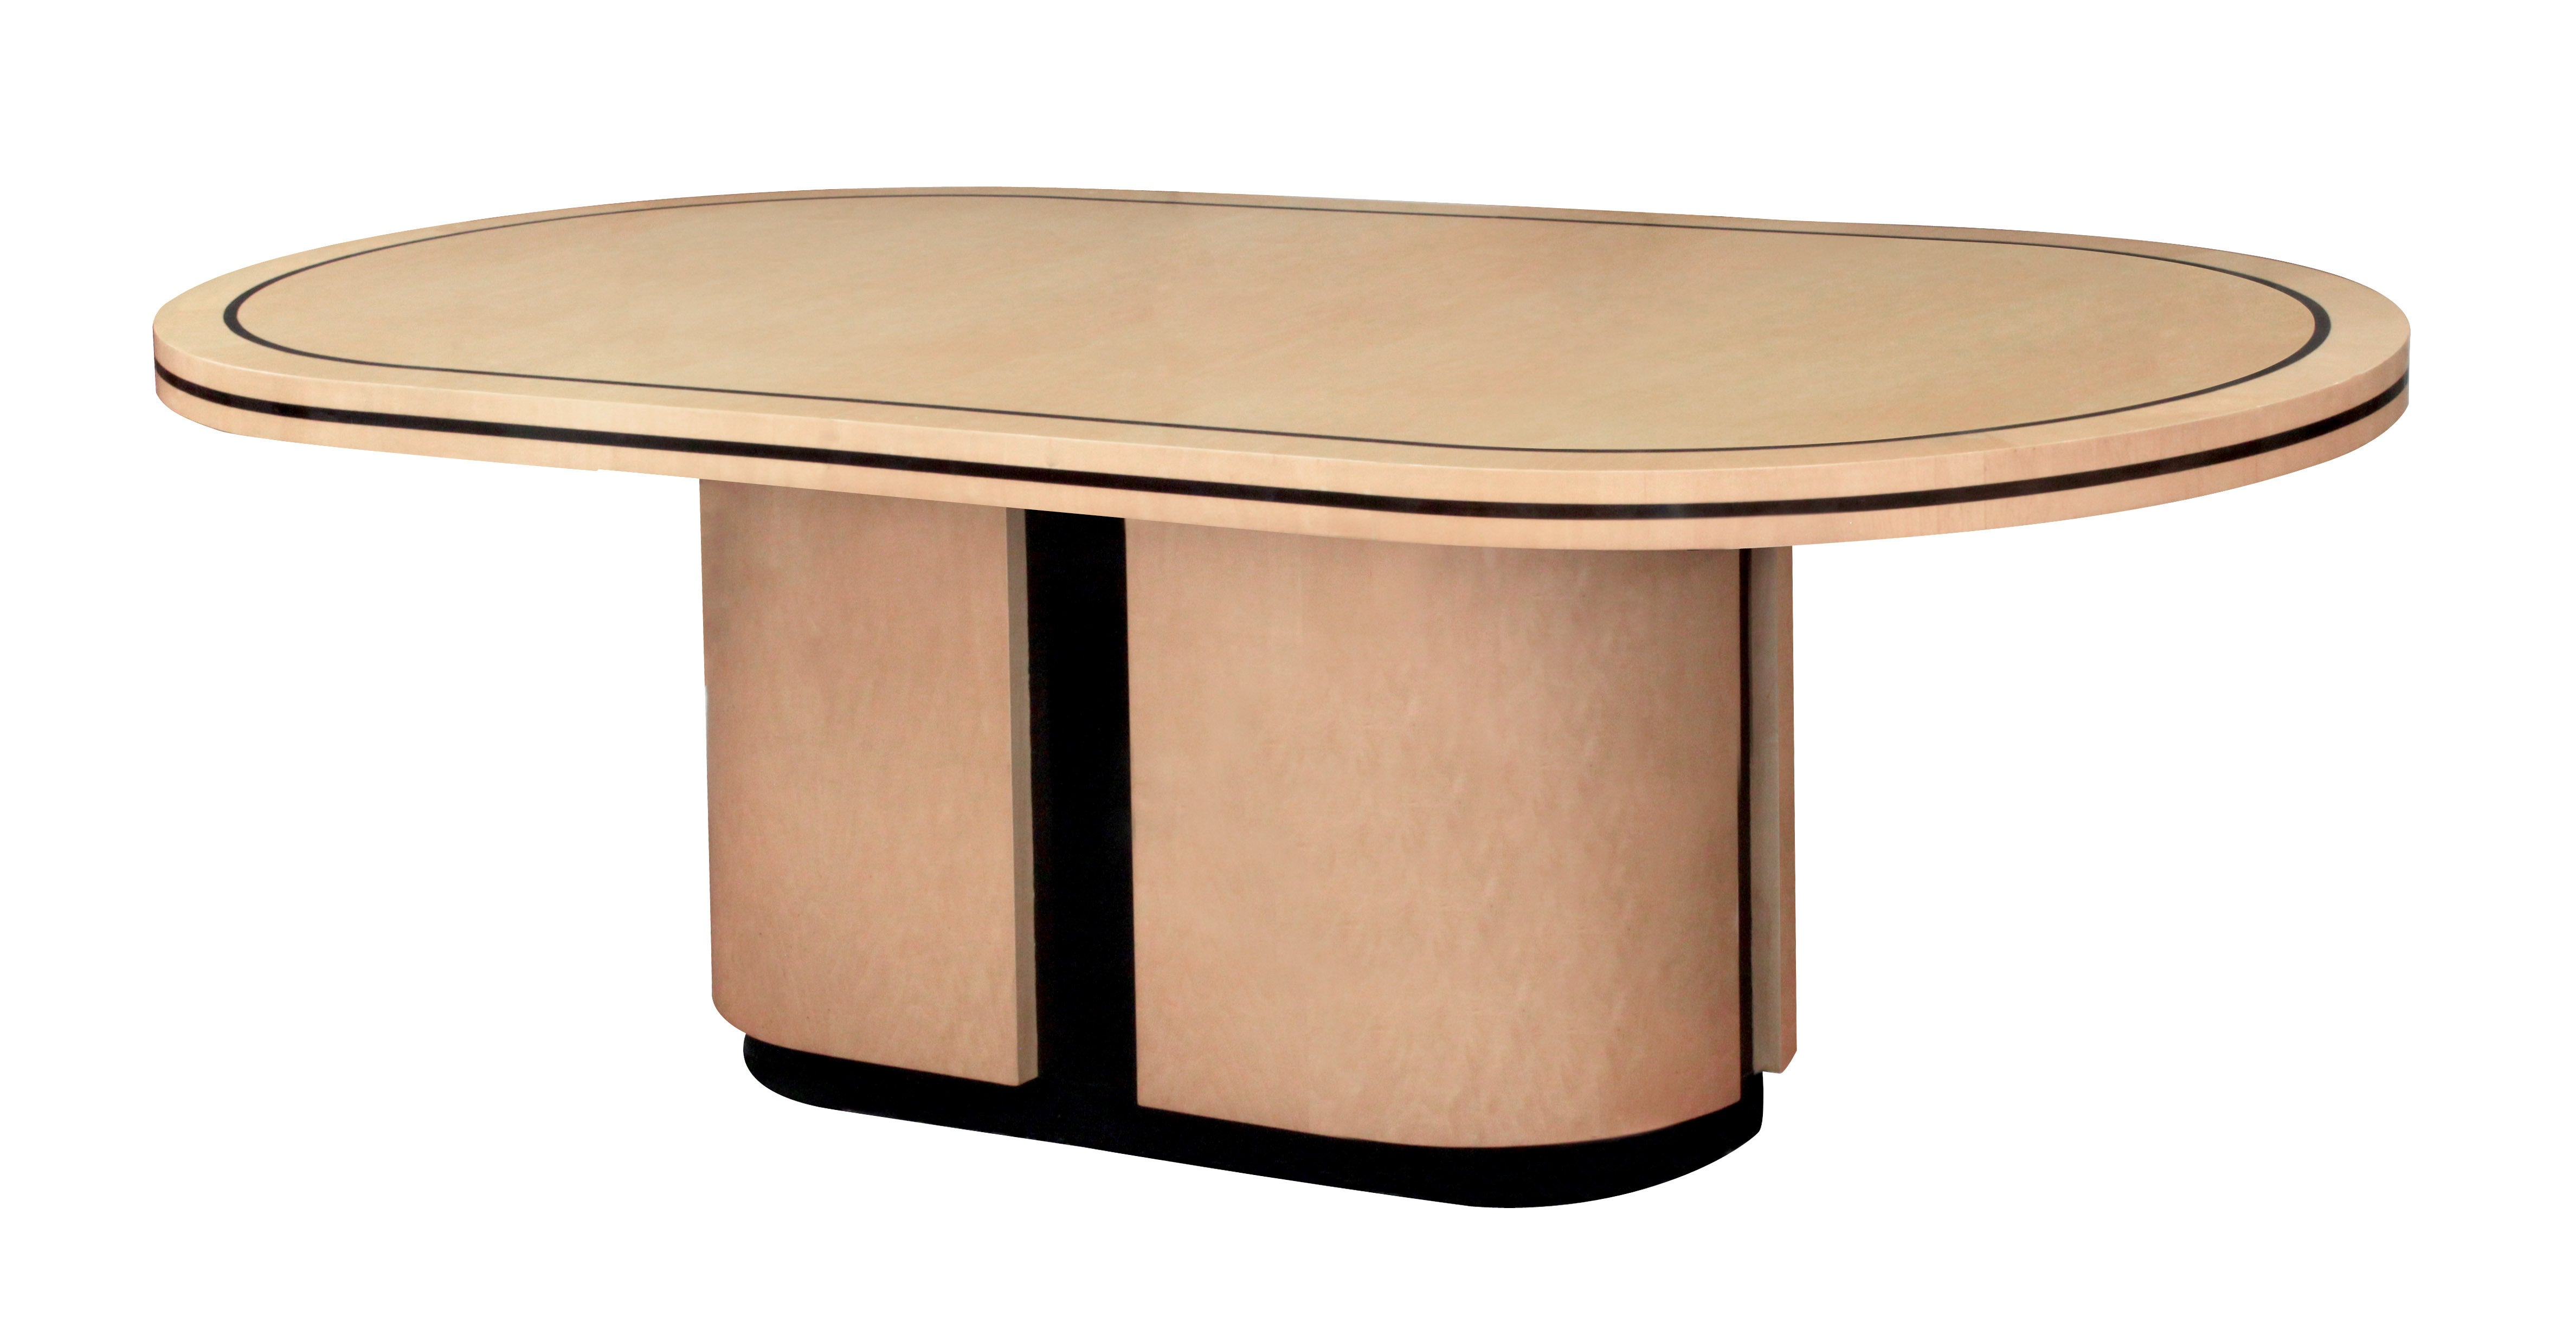 Elegant Dining Room Table with Inlays by Tommi Parzinger